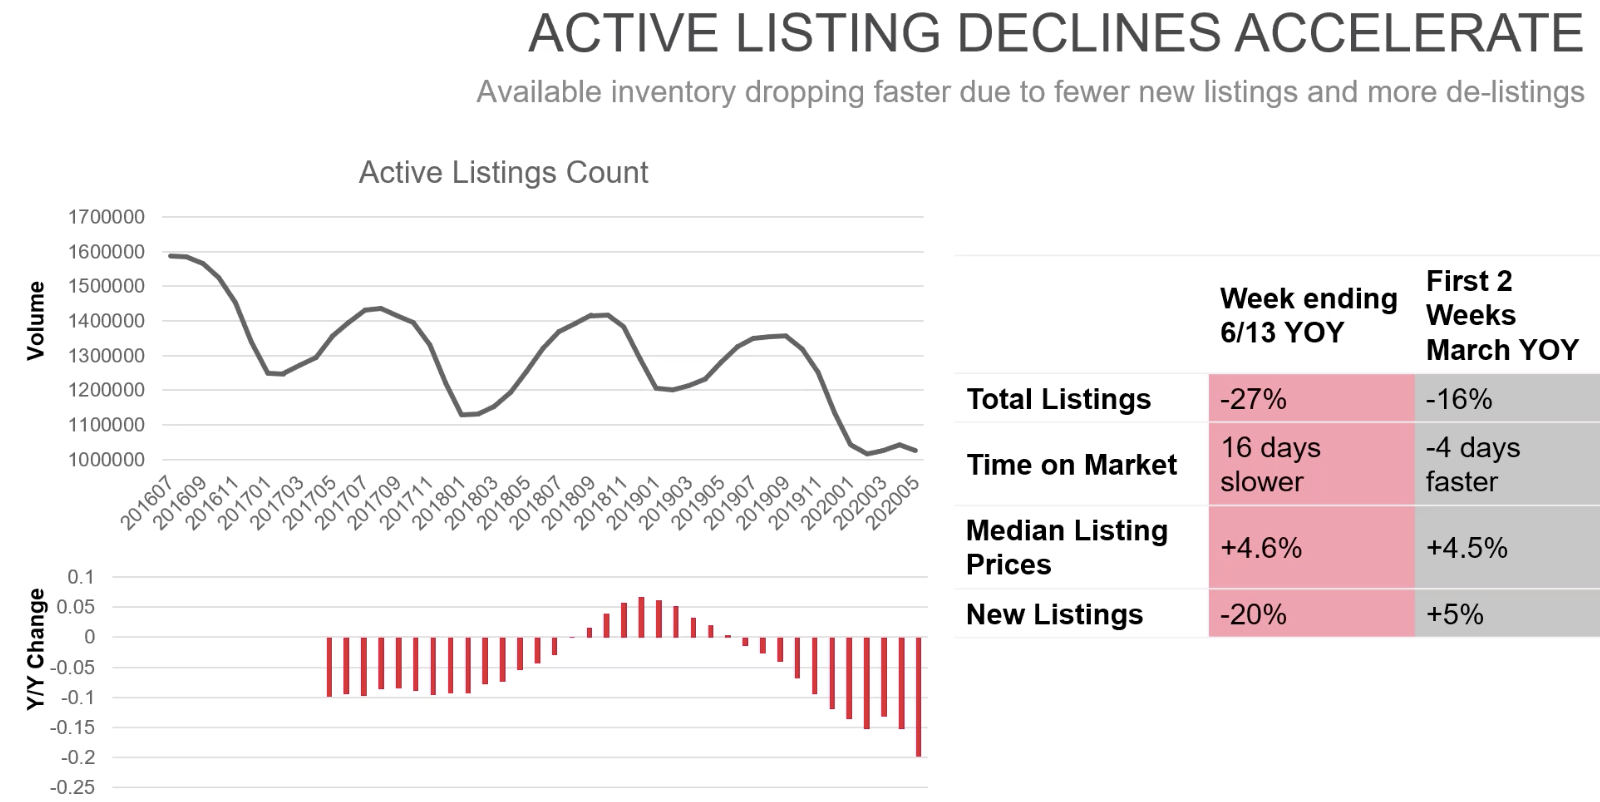 Graph from realtor.com showing the available housing inventory dropping quickly during COVID-19